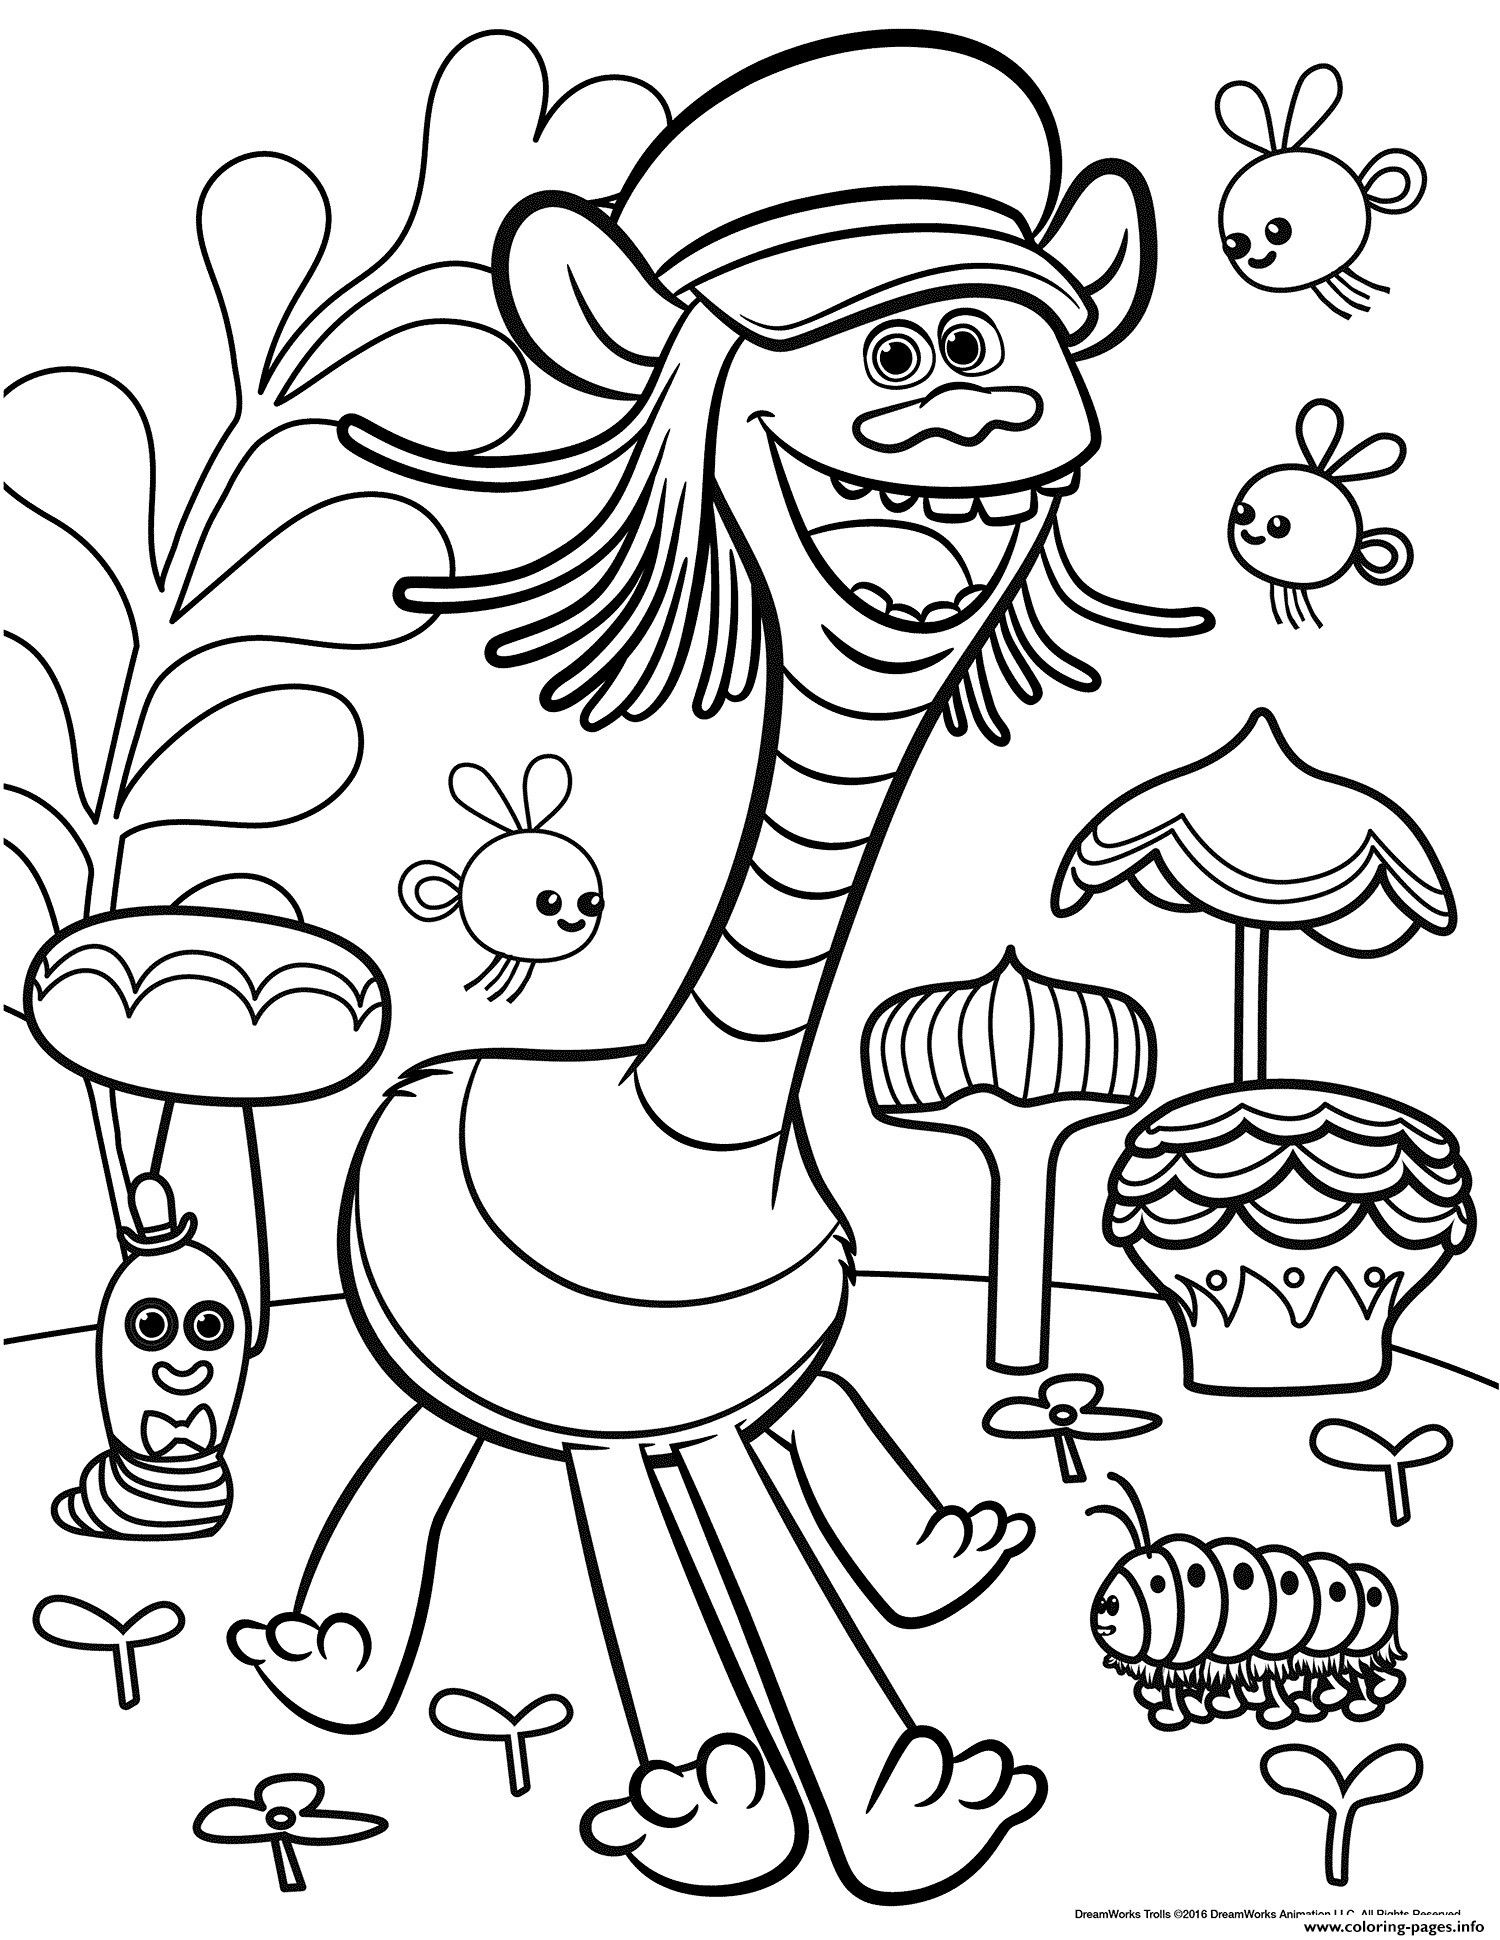 Trolls Colouring In Pages Through The Thousand Photos On The Internet Regarding Trolls Co In 2020 Poppy Coloring Page Free Kids Coloring Pages Cartoon Coloring Pages